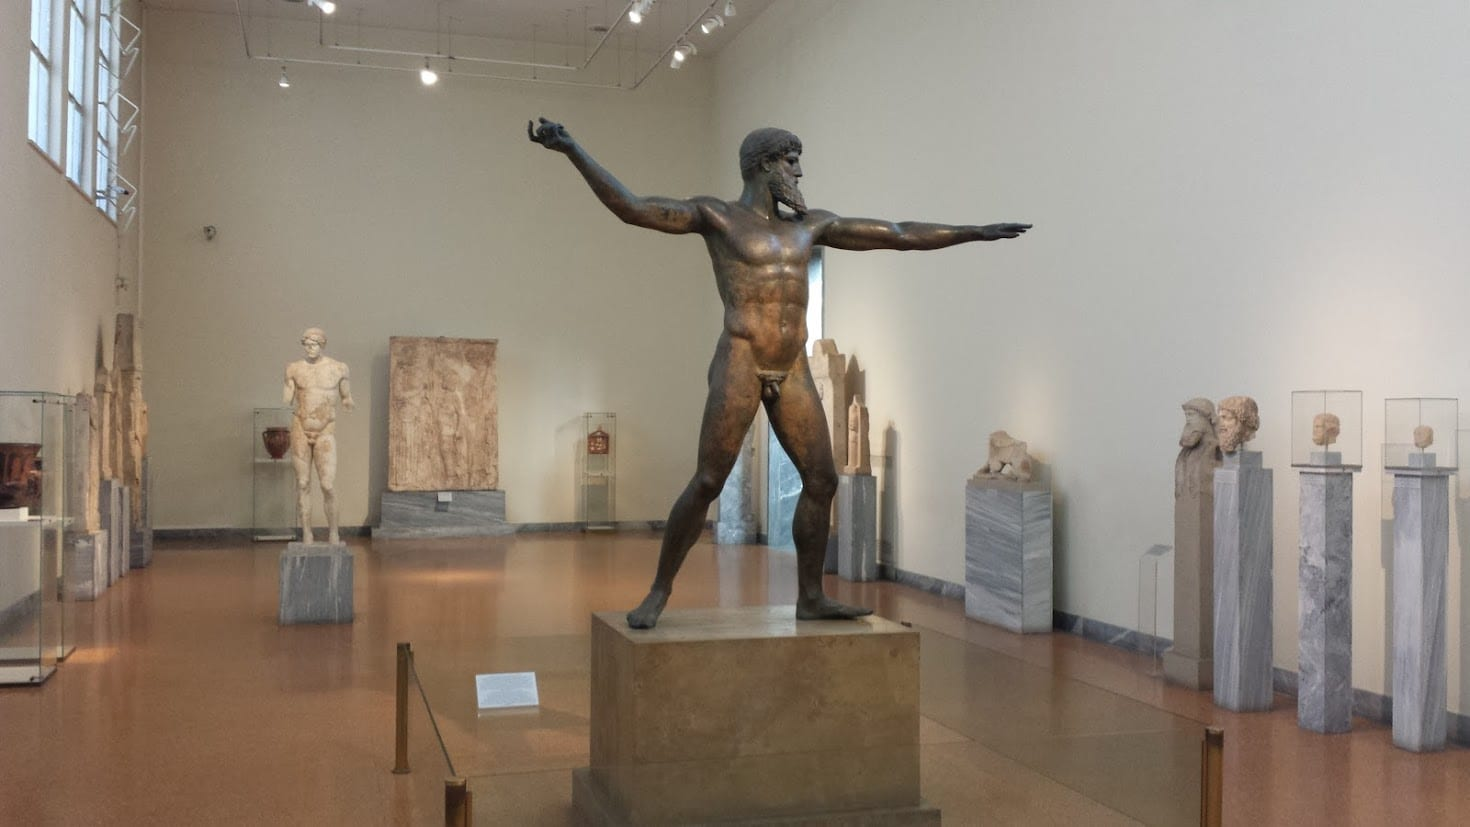 This ancient Greek bronze statue could be either Zeus of Poseidon